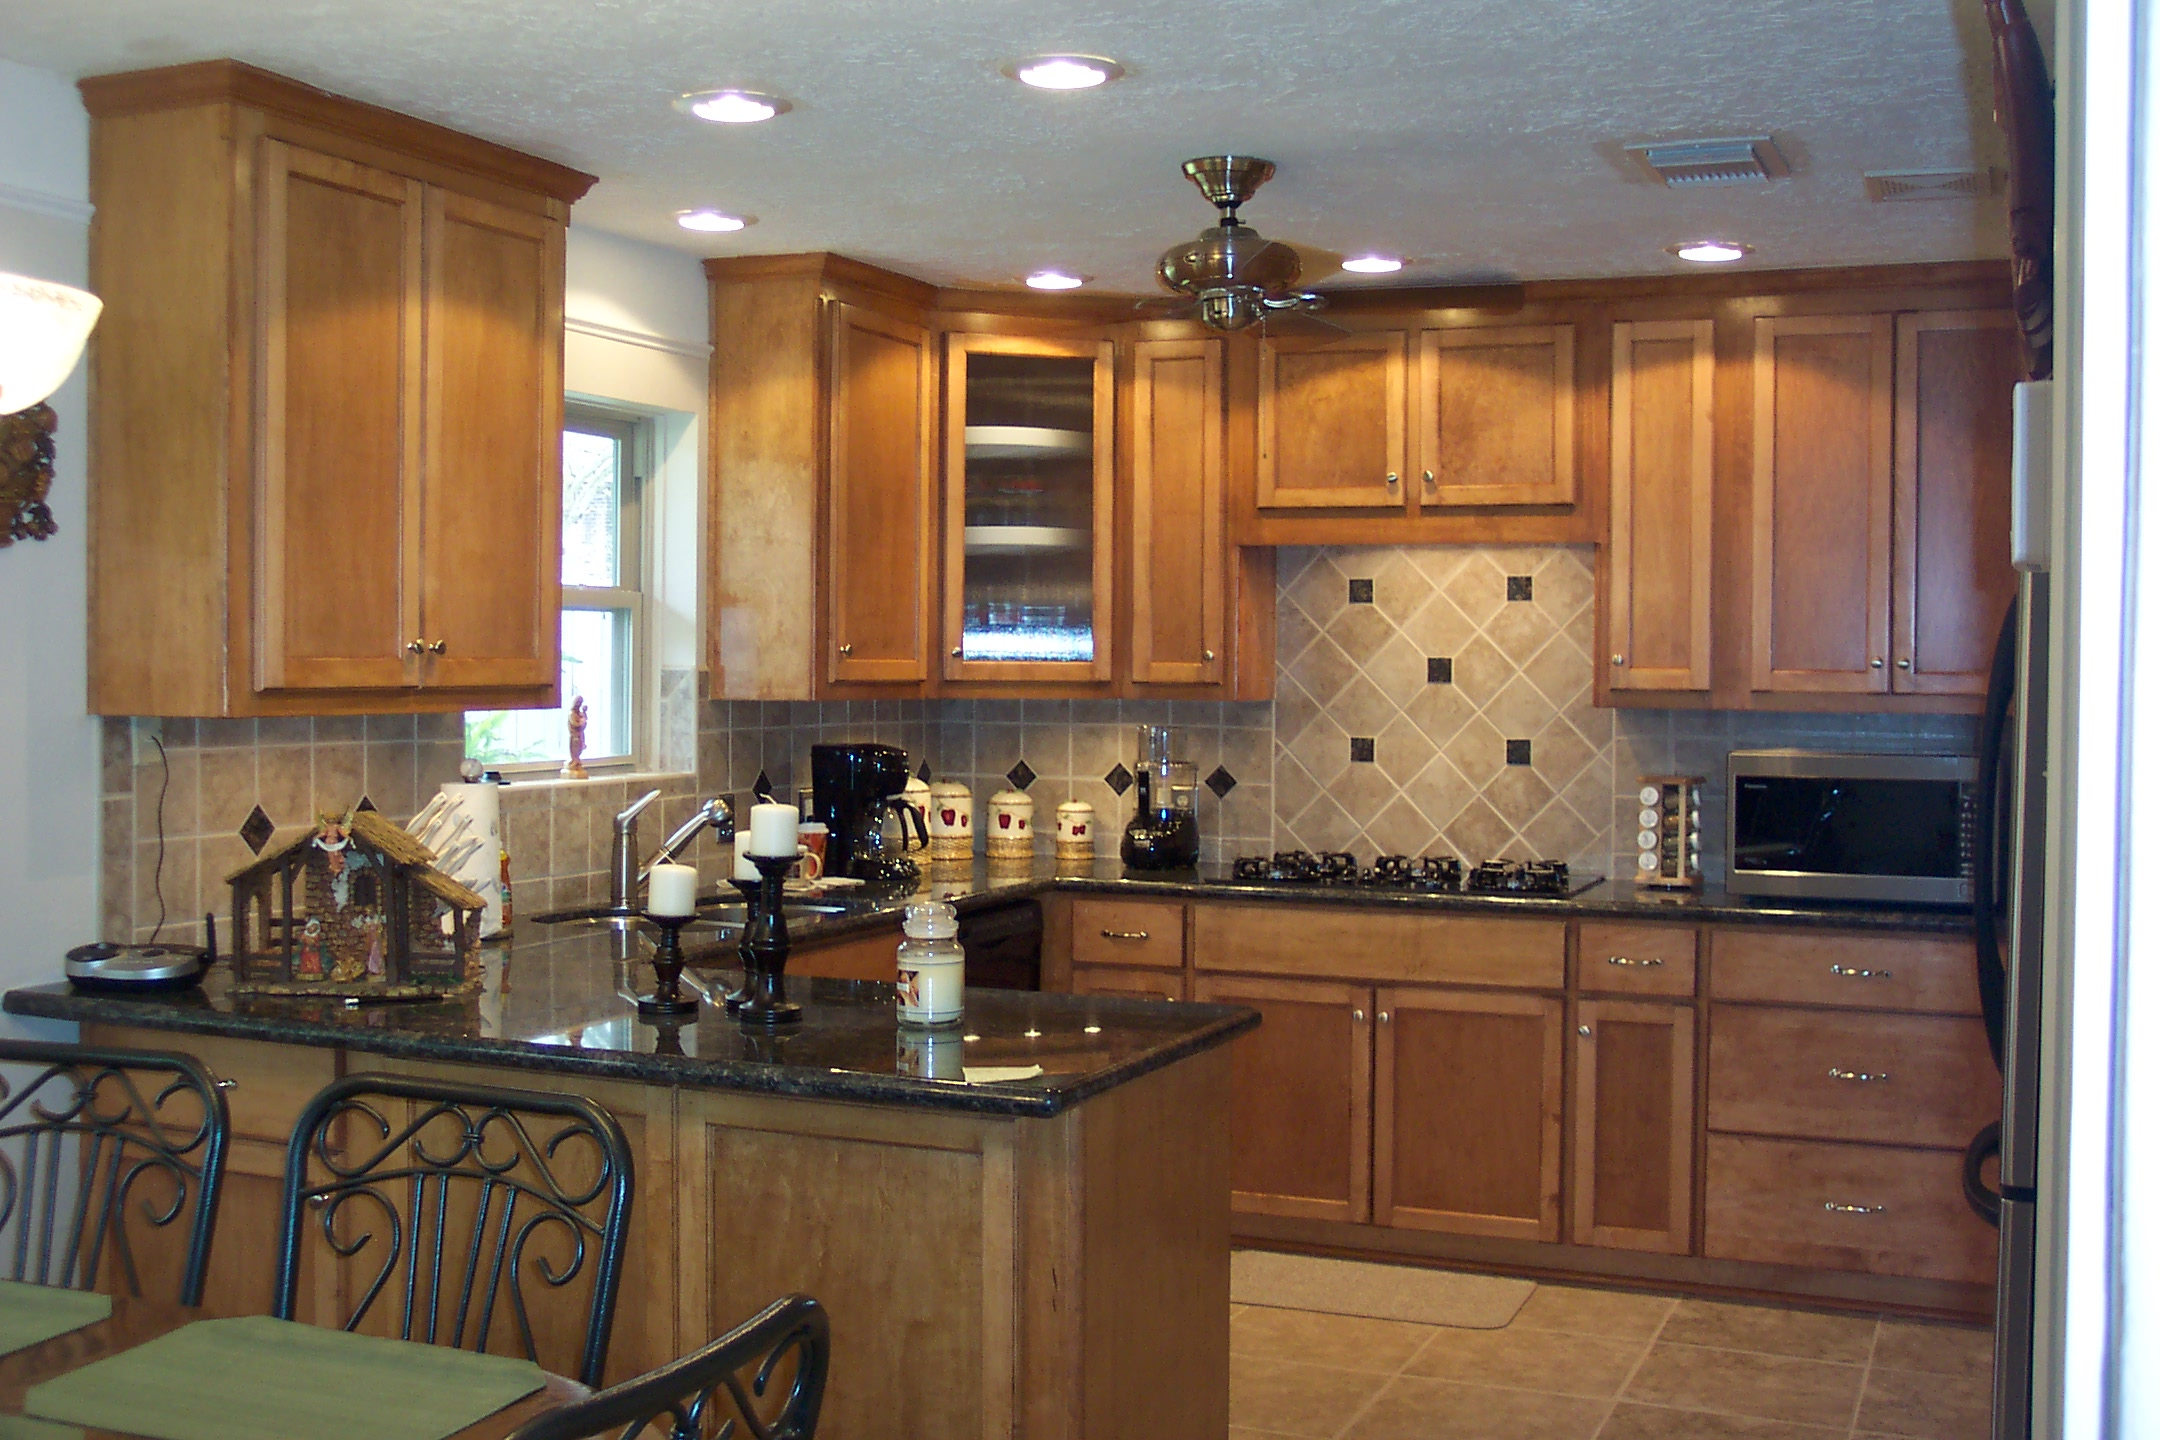 Kitchen Remodeling Ideas Pictures & Photos on Kitchen Remodeling Ideas  id=98650